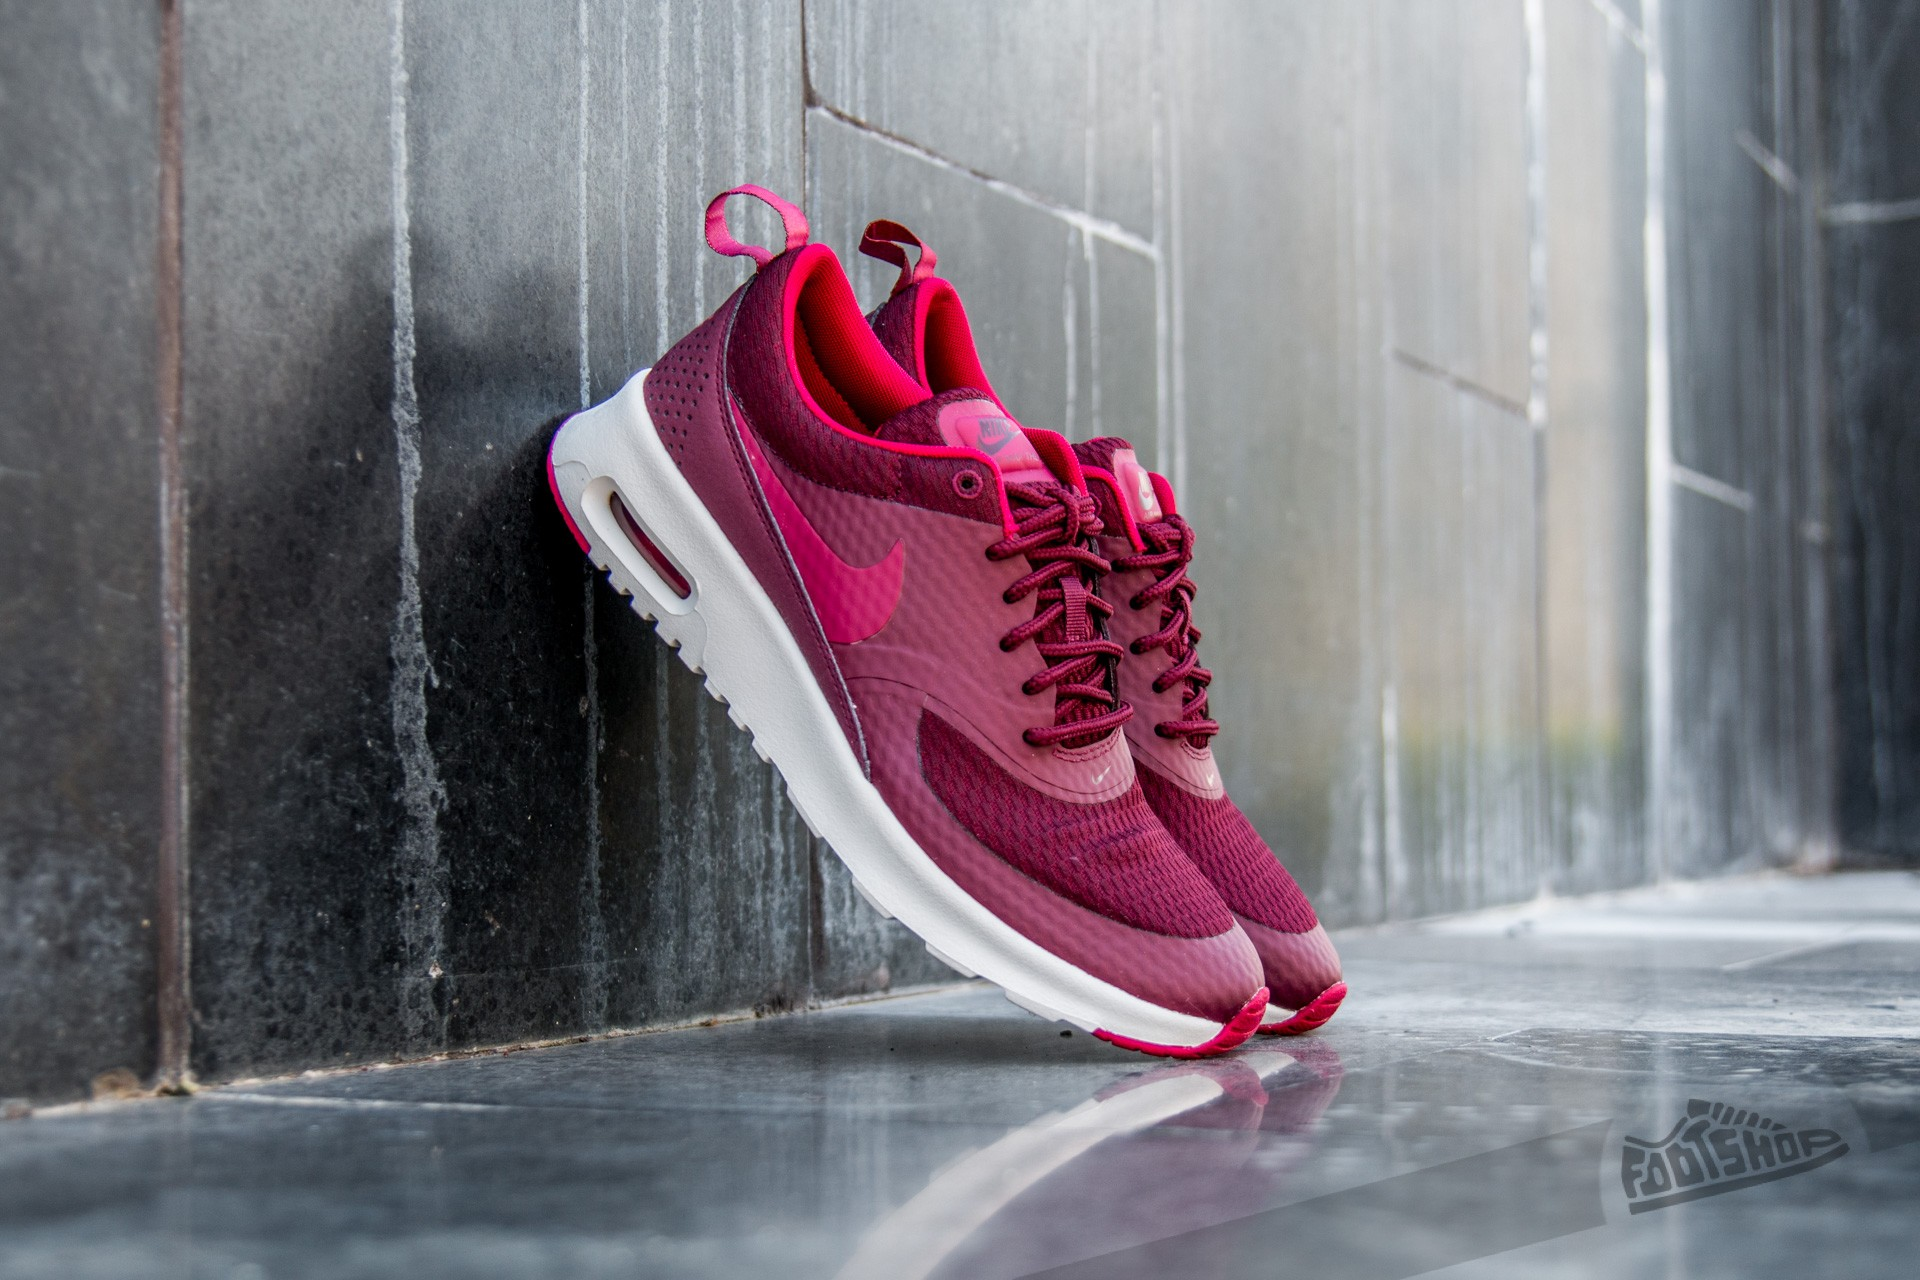 100% authentic 2ca1e 87262 Nike W Air Max Thea TXT Night Maroon Noble Red-Summit White